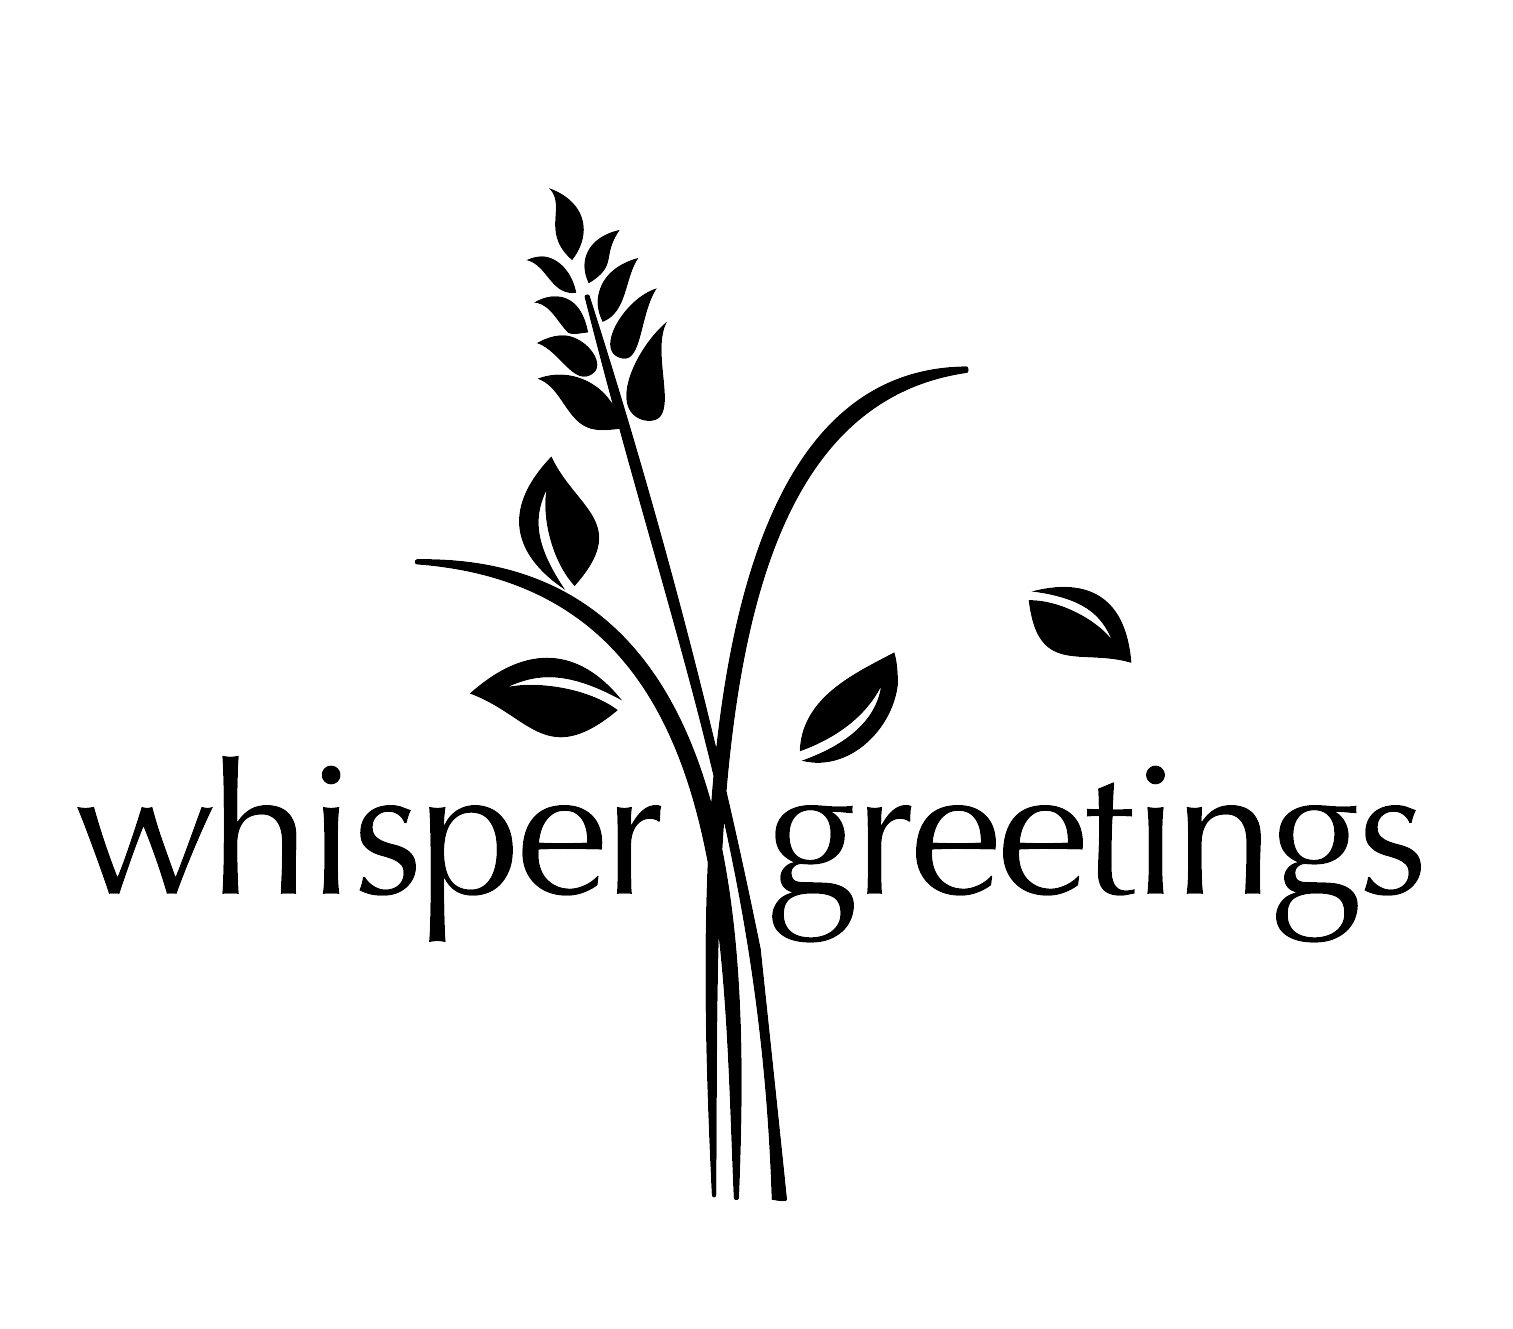 Whisper greetings announces custom card services to increase whisper greetingswhisper greetings was founded by sheila sylvestre in february 2010 it is a card company dedicated to creating genuine poetic expressions m4hsunfo